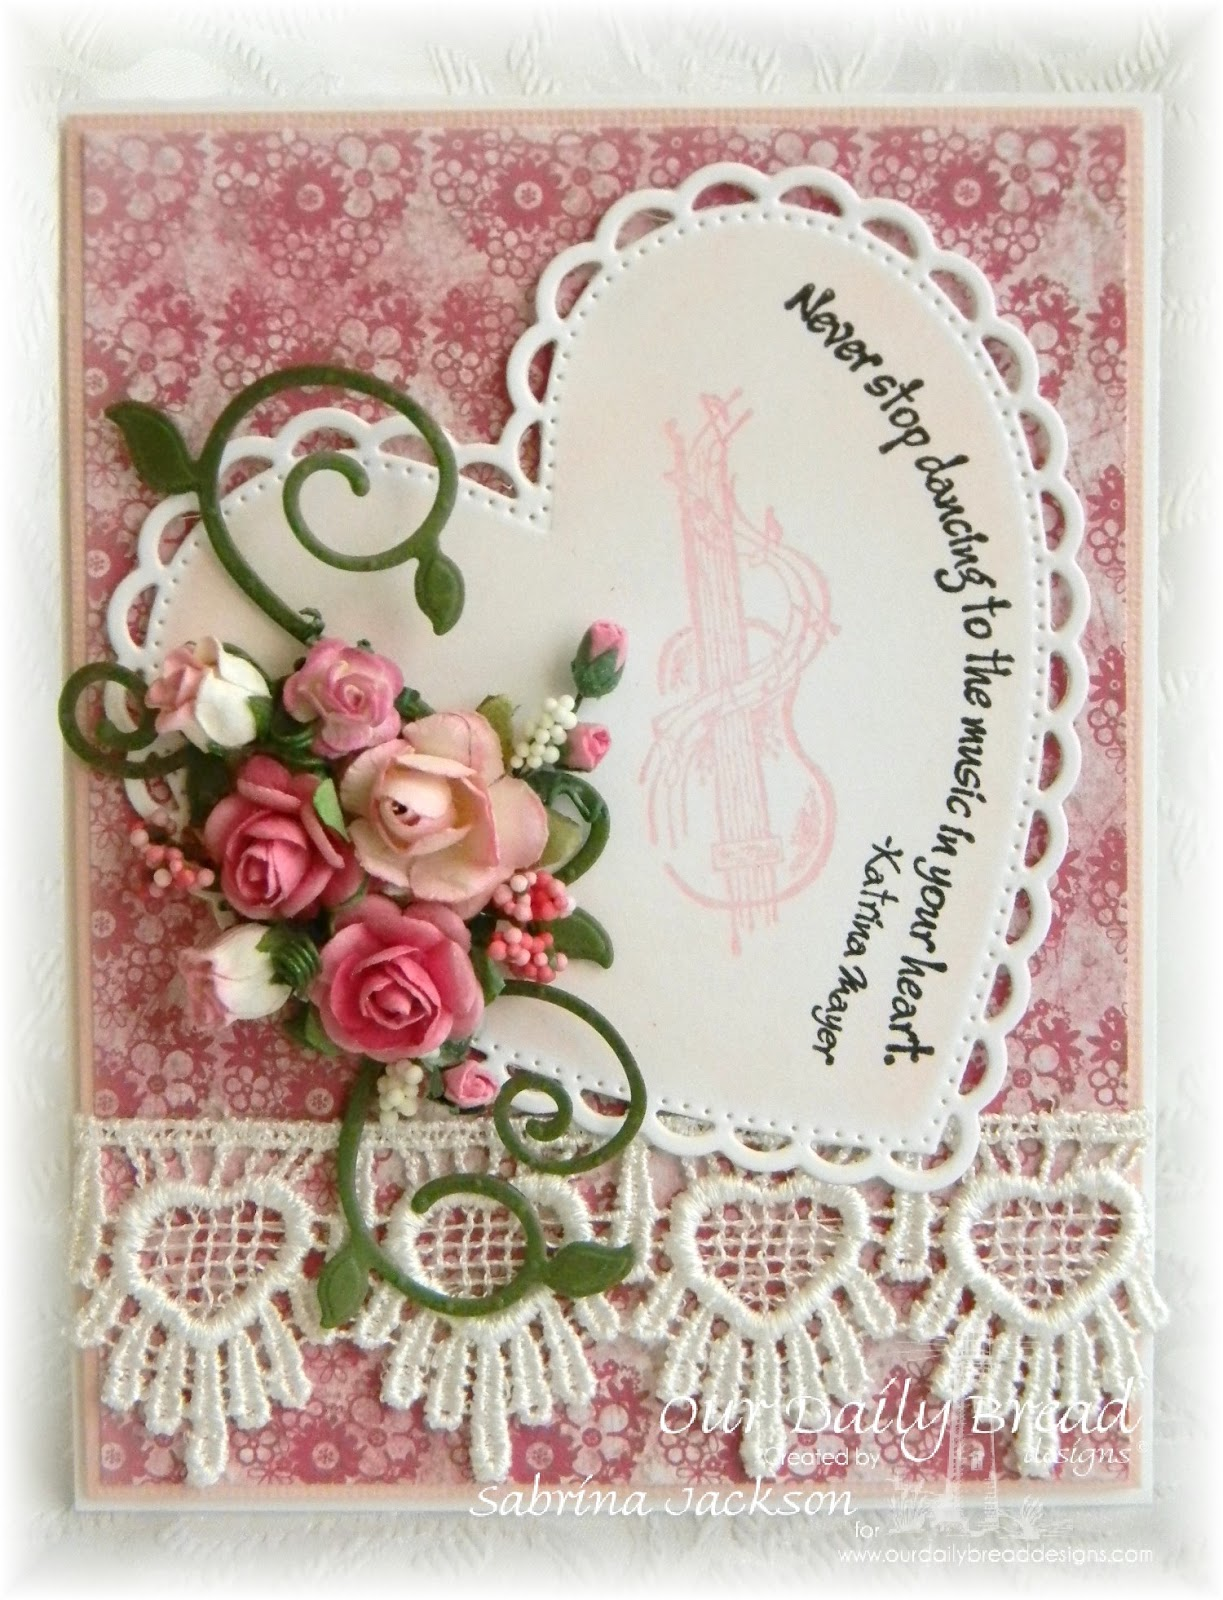 Stamps - Our Daily Bread Deisns Sing Thy Grace, Music Speaks, ODBD Custom Ornate Hearts Dies, ODBD Custom Fancy Foliage Dies, ODBD Heart and Soul Paper Collection